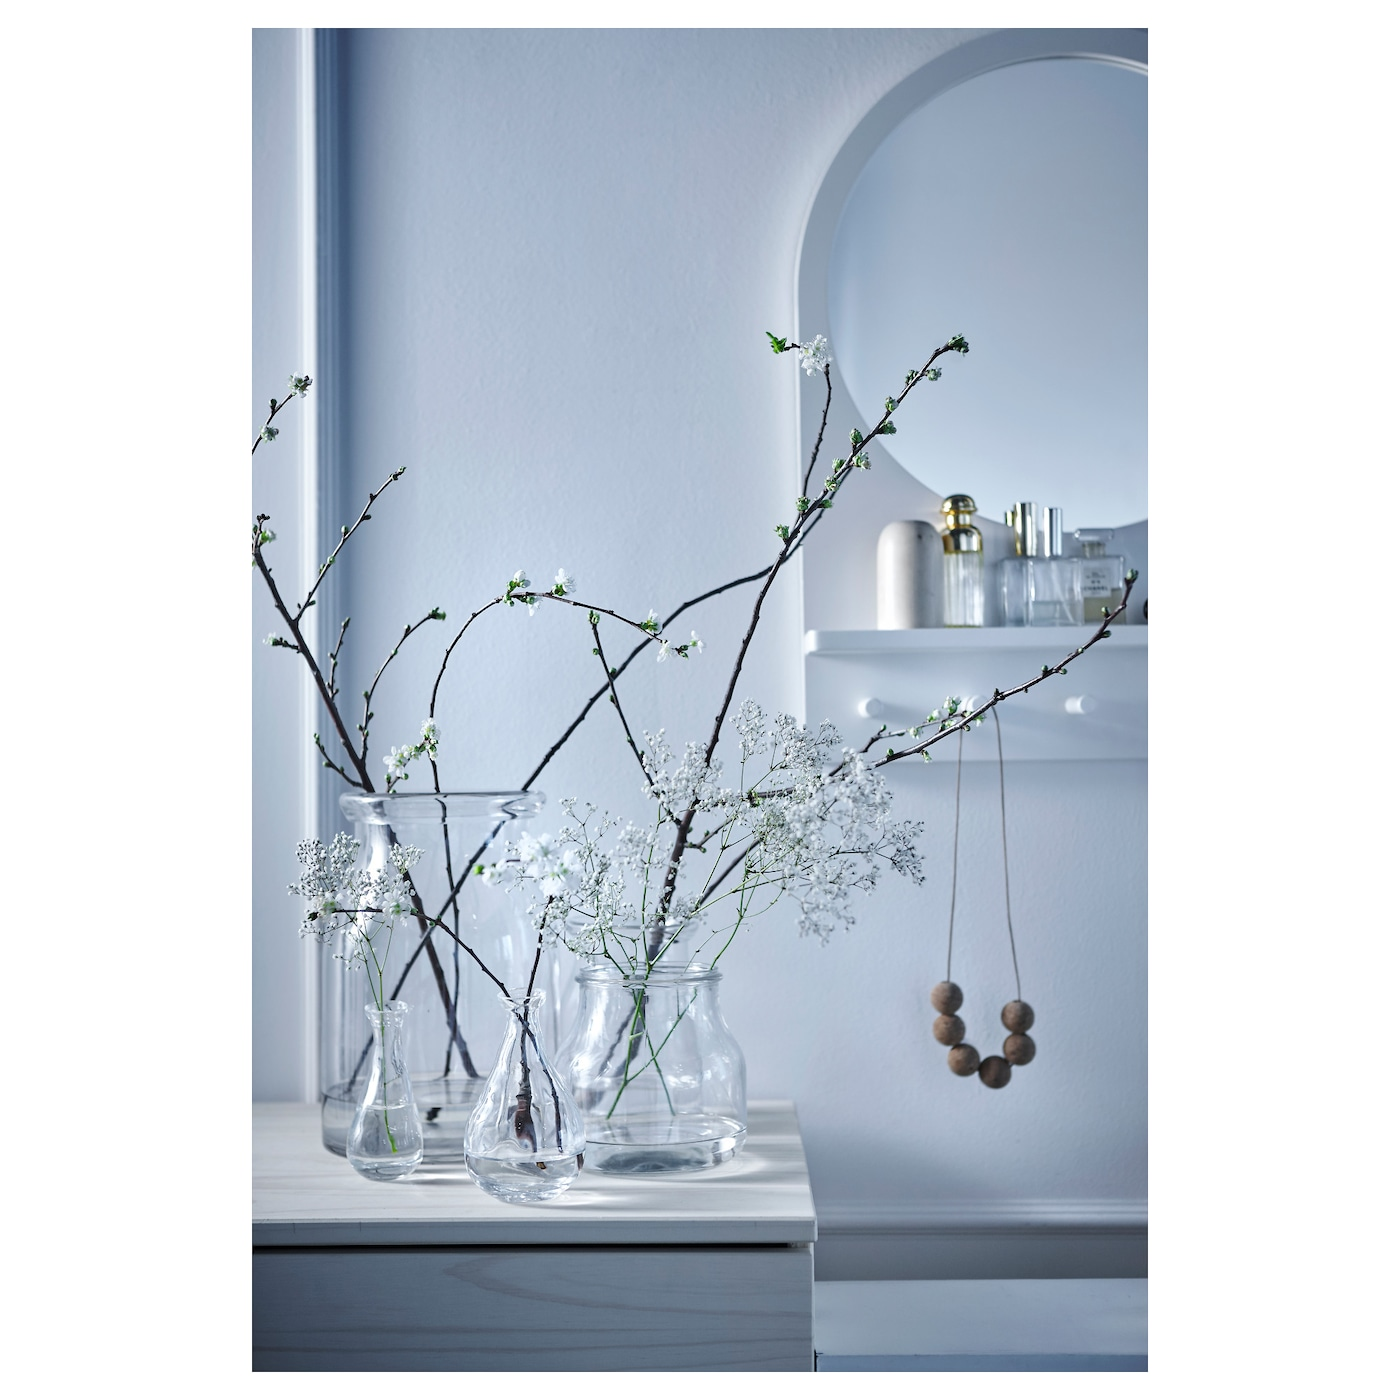 hooks bigger zoom picture coat hover accessories wall ltd to shelf home grey for bloom shelves and click with stands racks thickbox here a bliss